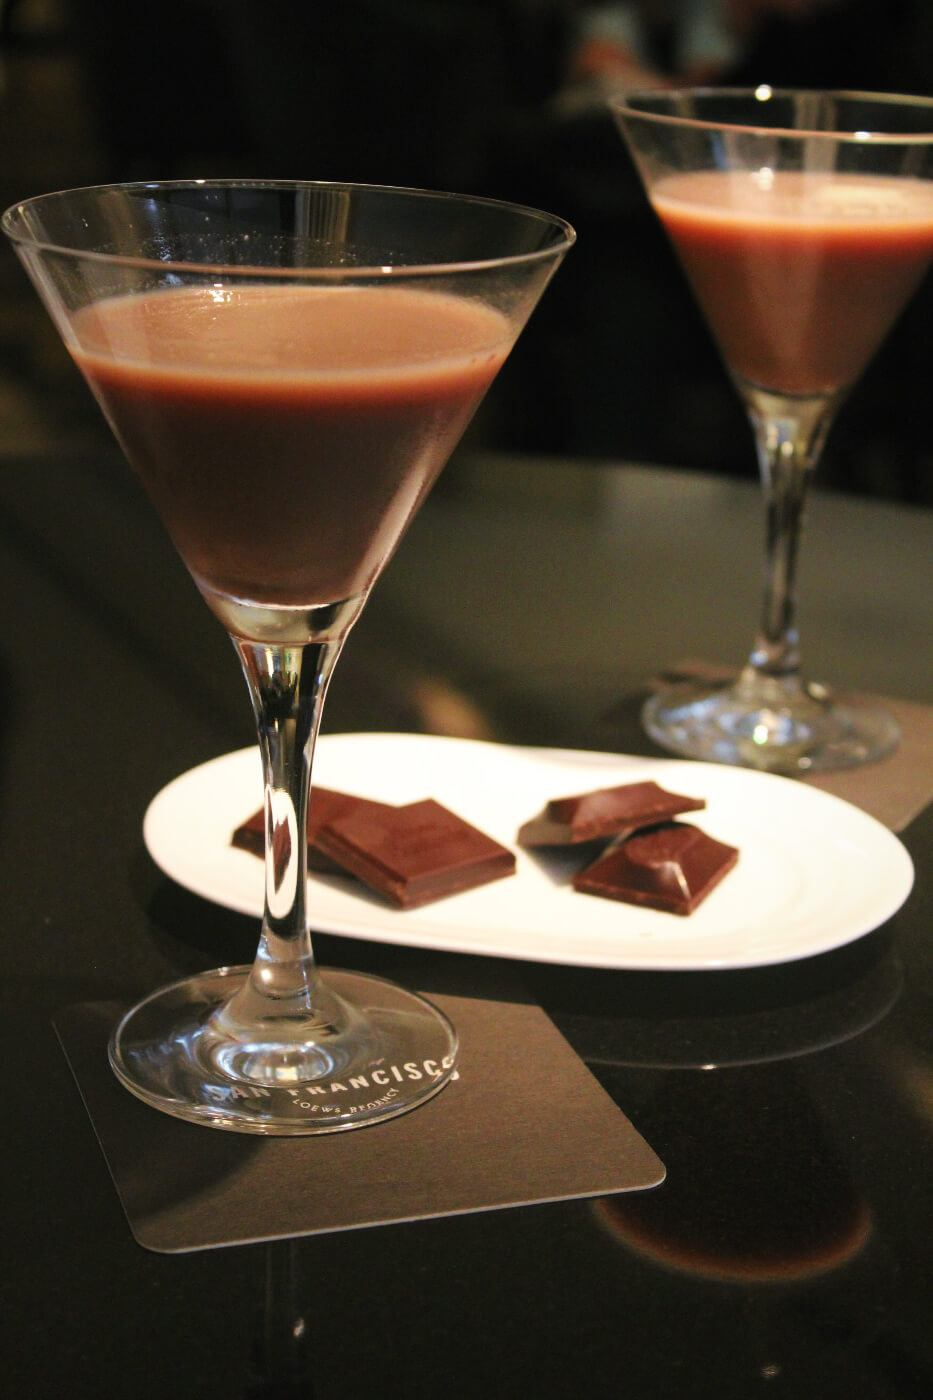 A delicious chocolate cocktail made with gin on the Ultra Chocolate Tour in San Francisco, California!